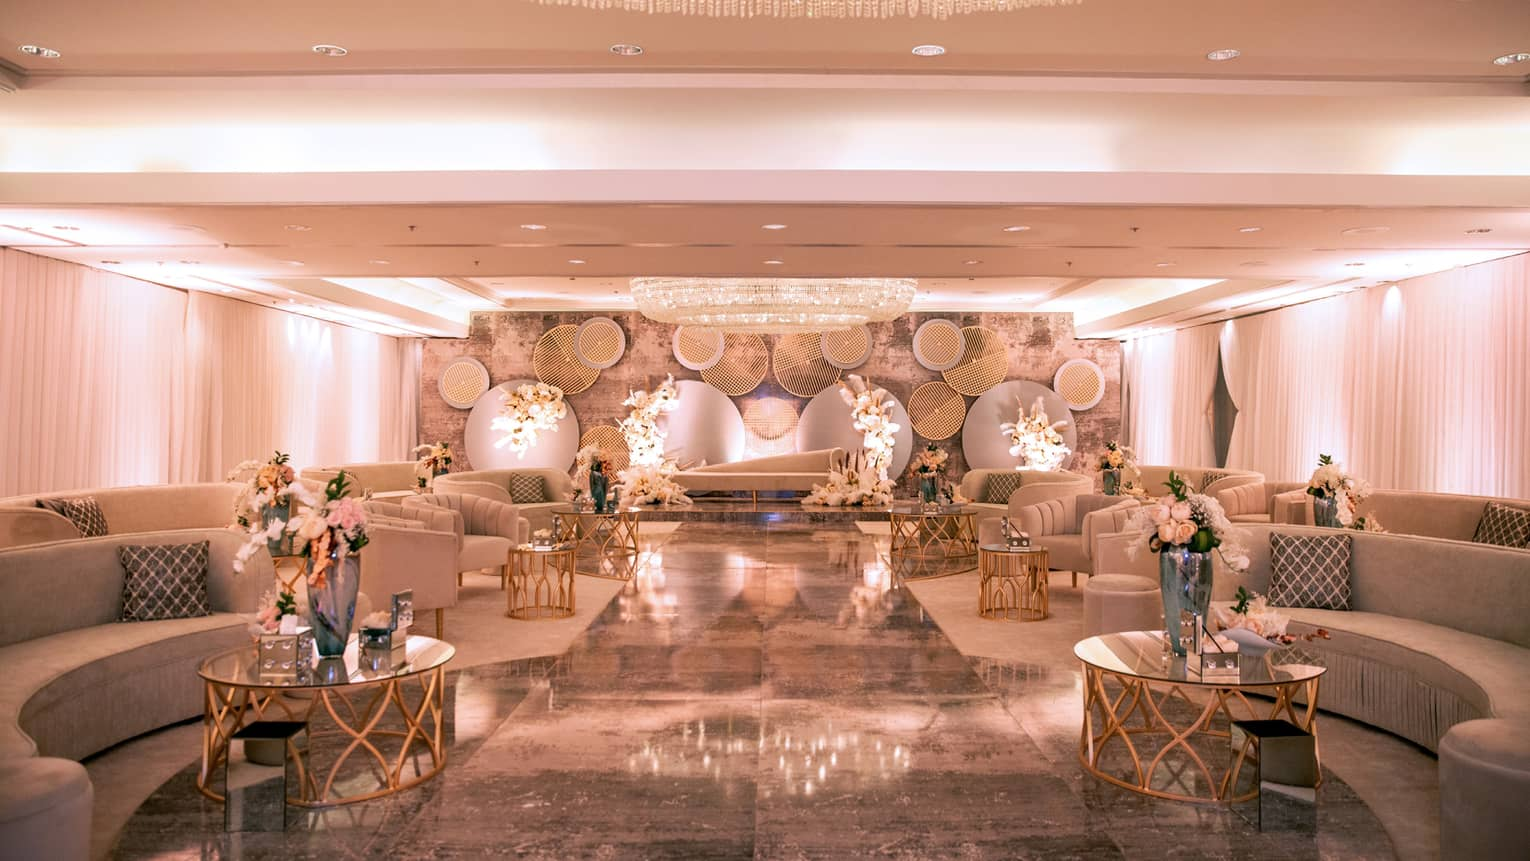 Elegant ballroom with rows of curved sofas, coffee tables and flowers under large dome chandelier